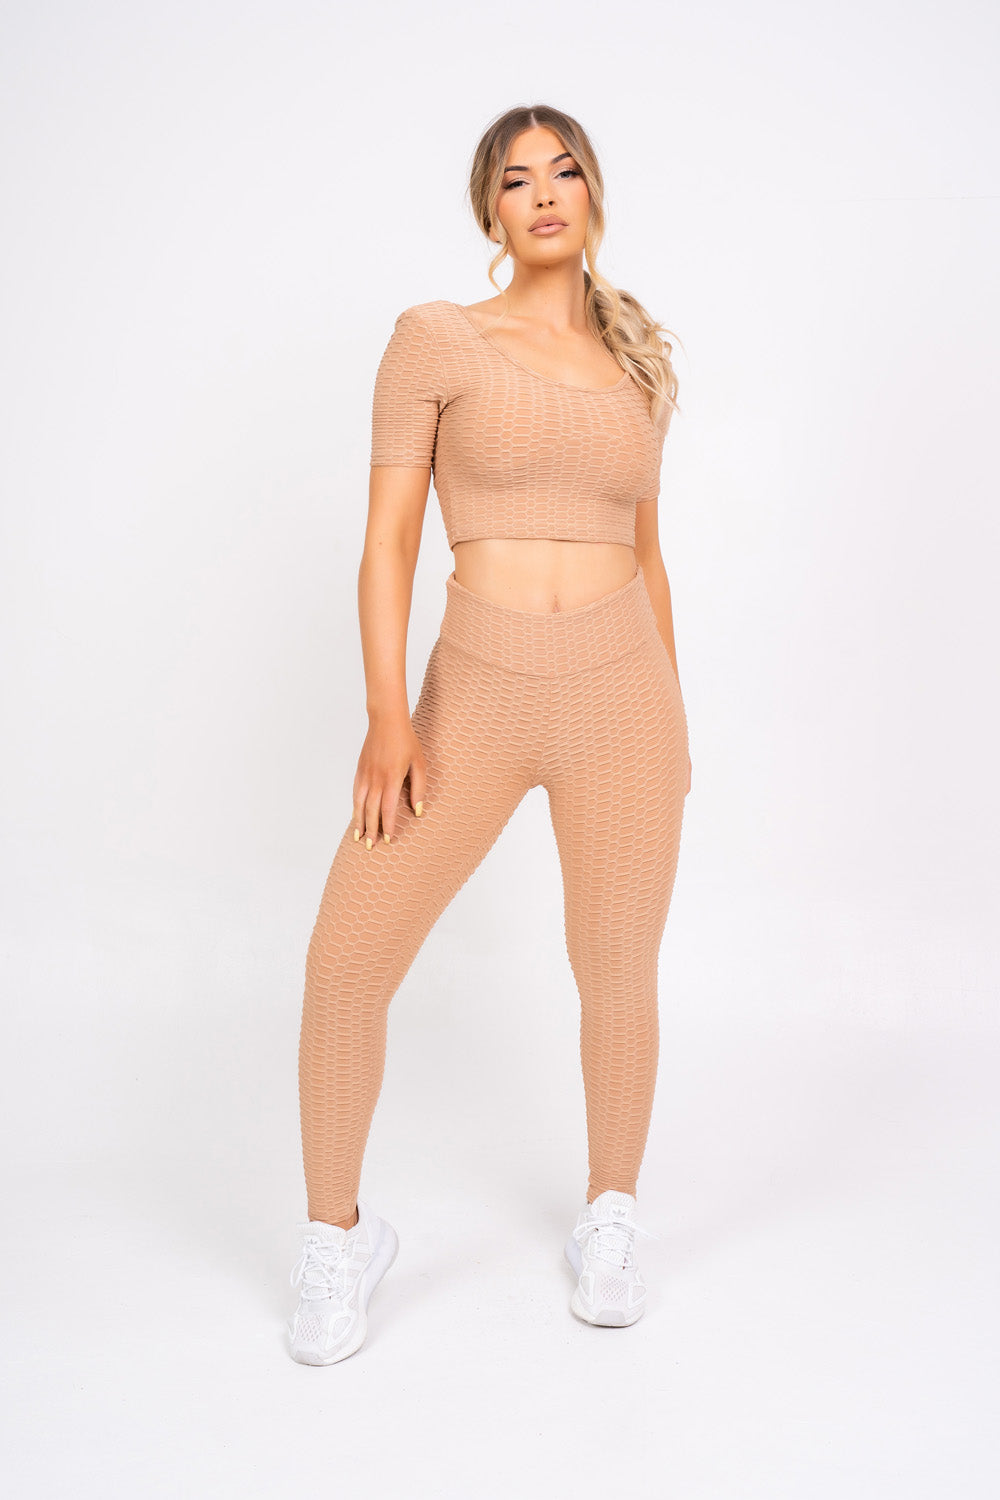 Dion Sand Honeycomb Sports Cropped Top & leggings Co-ord Fitness Set